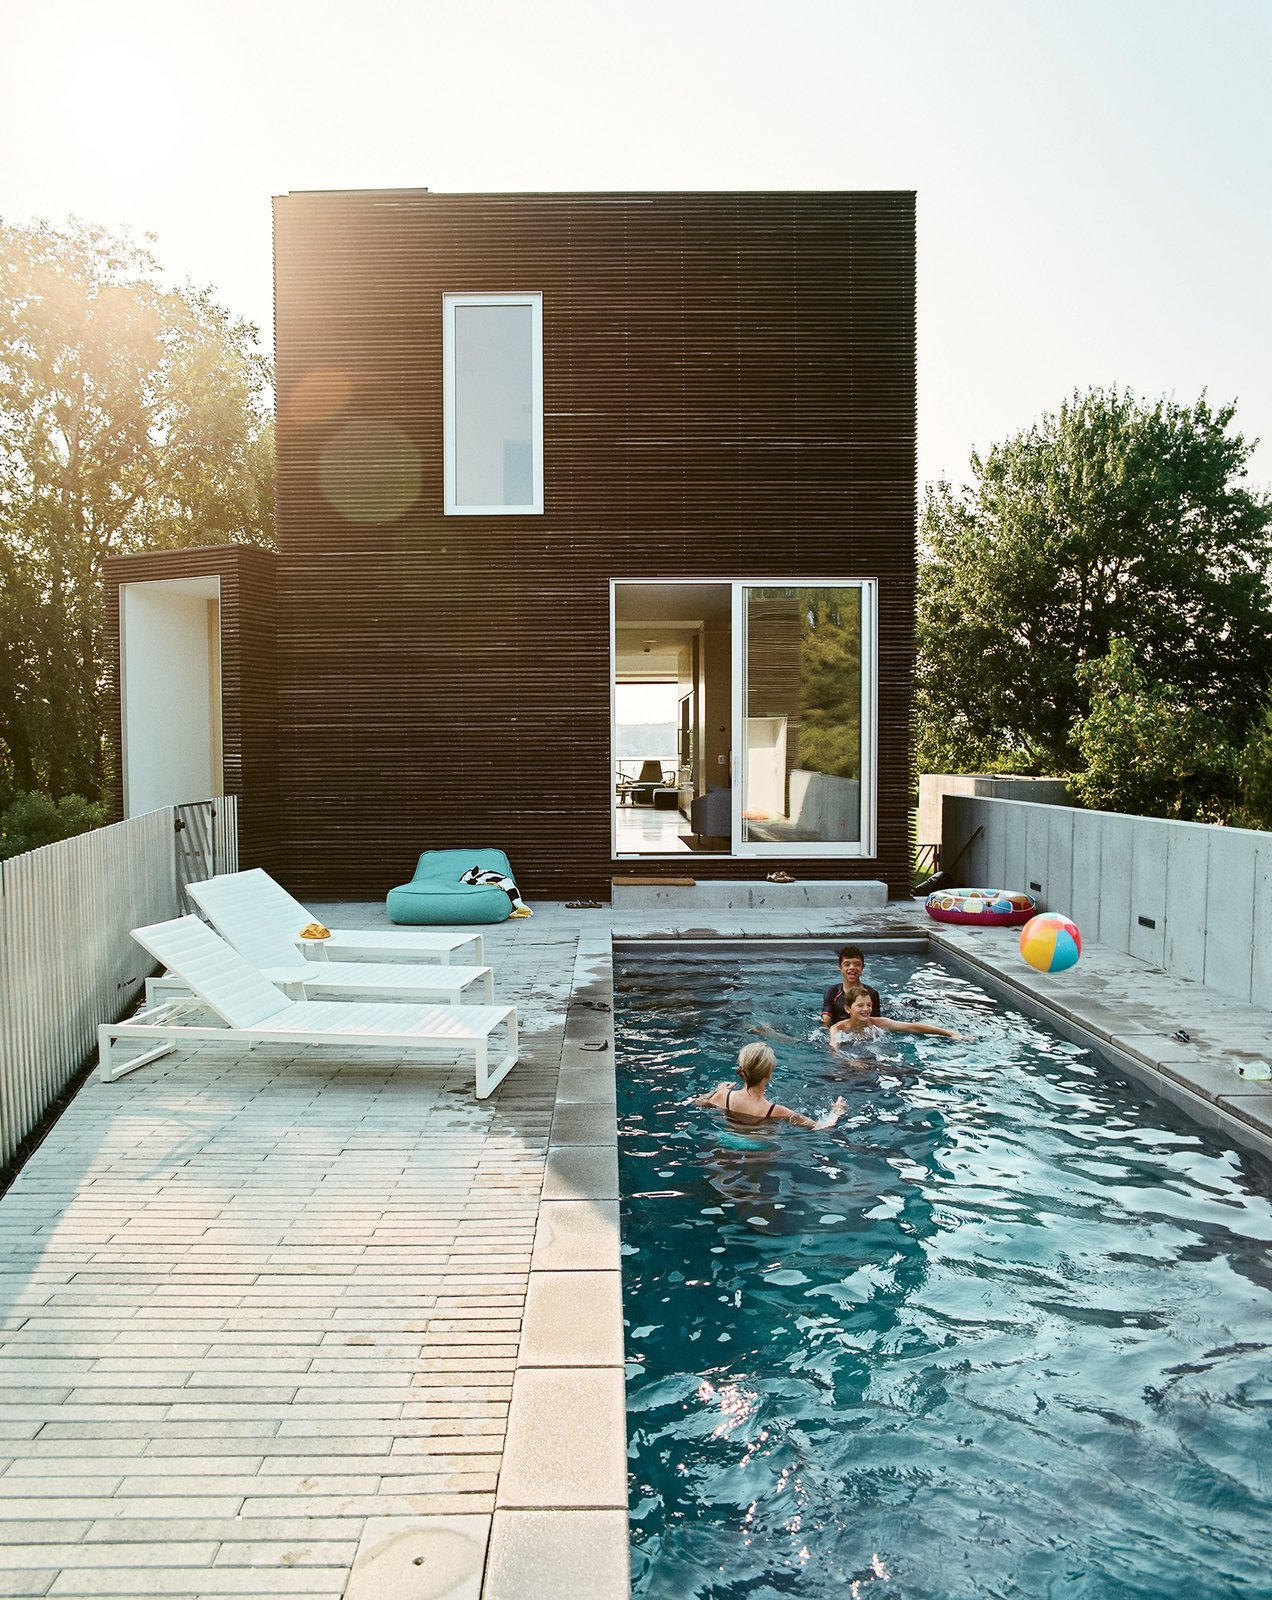 #pooldesign #pool #terrace #Eos #loungechair #inflatable #toys #modern #minimal #exterior #outside #vacationhome #family #landscape #midcentury    Best Photos from Indoors/Outdoors